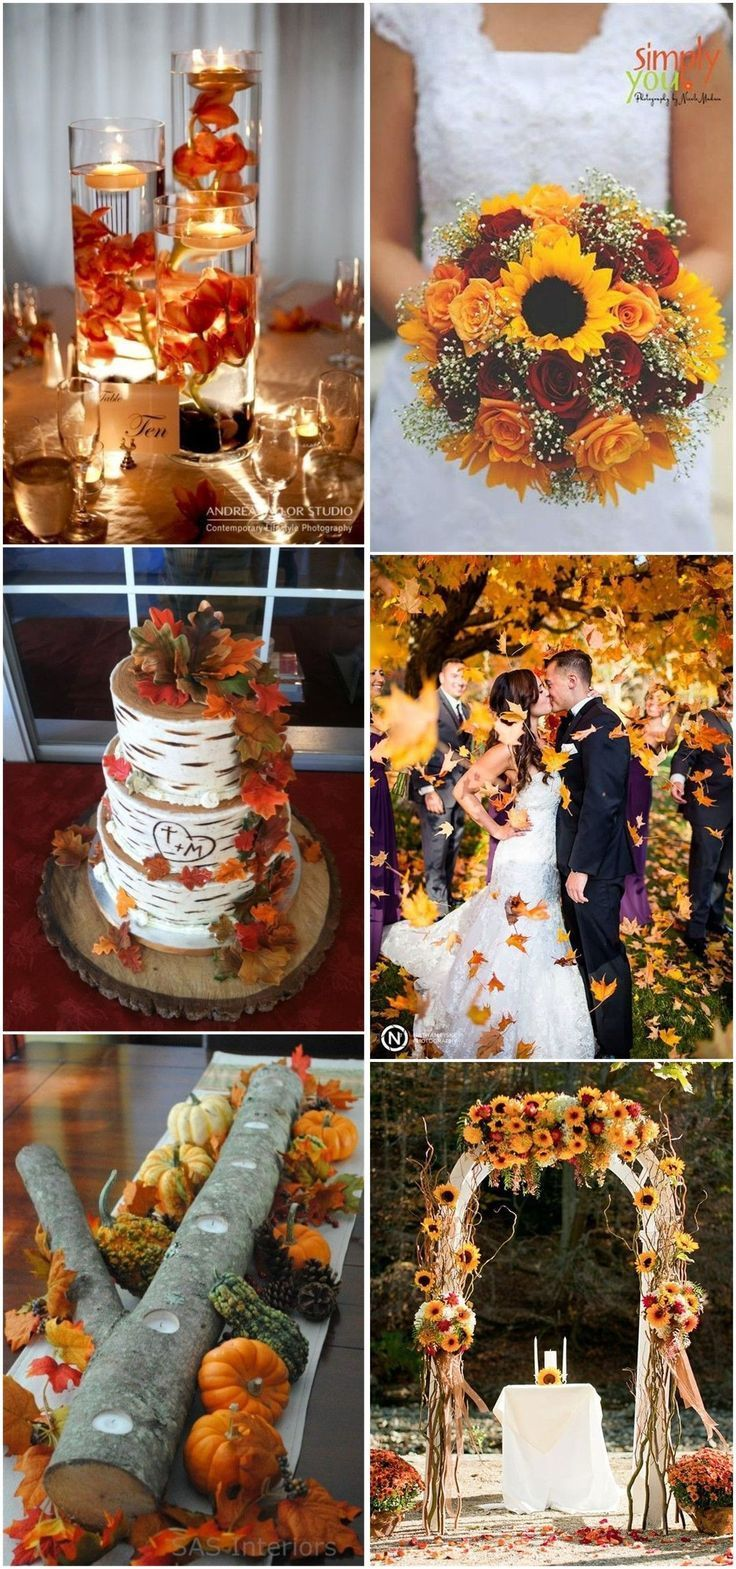 23 Best Fall Wedding Ideas in 2019 #fallweddingideas